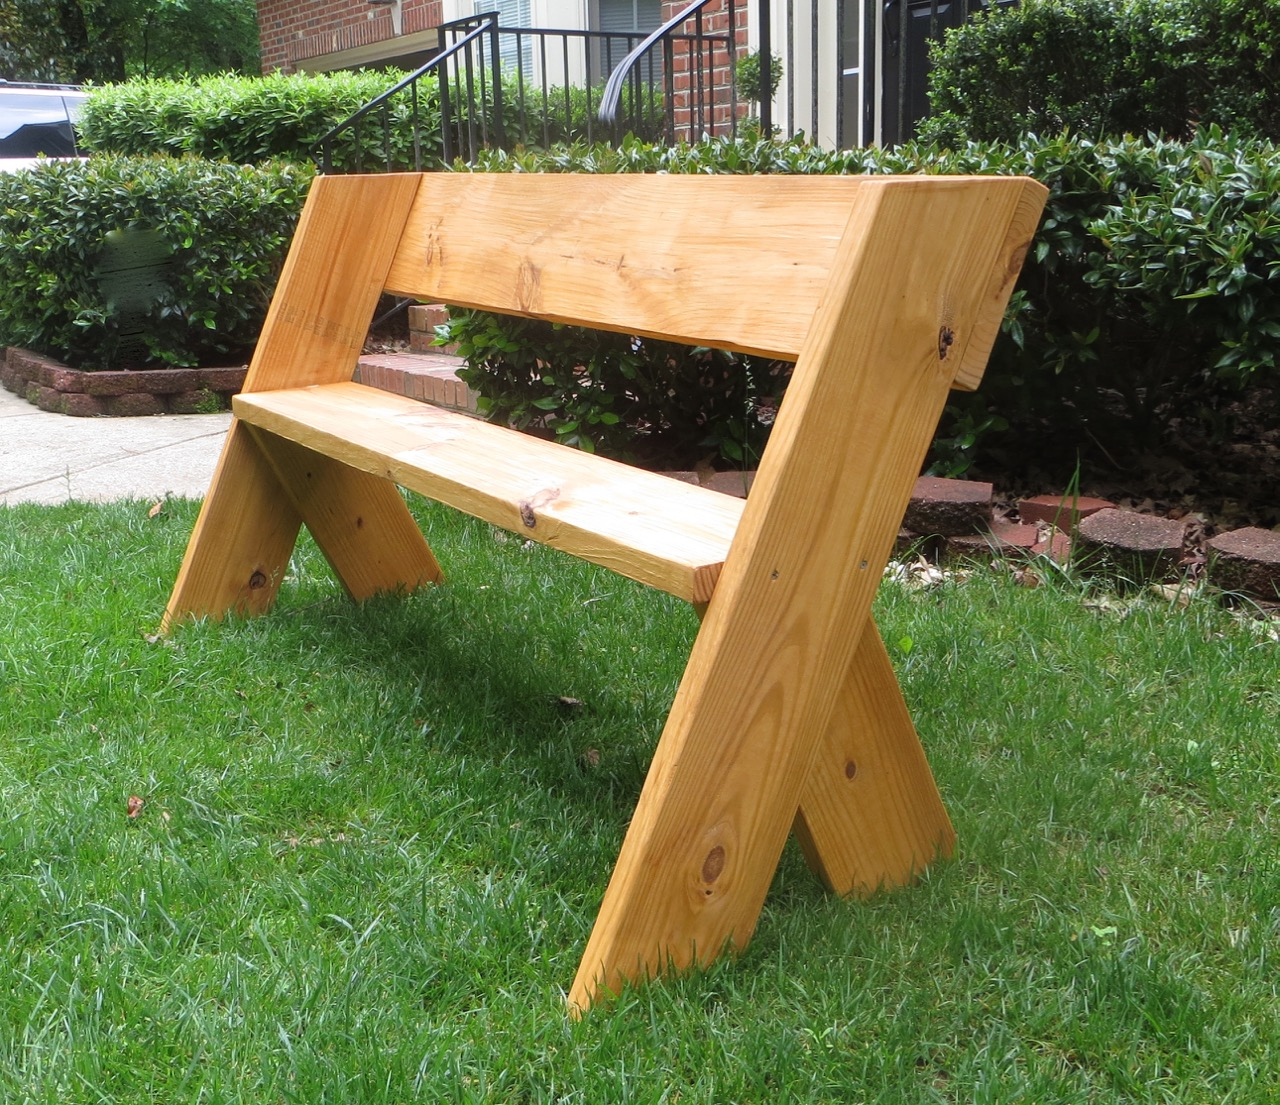 DIY Tutorial $16 Simple Outdoor Wood Bench